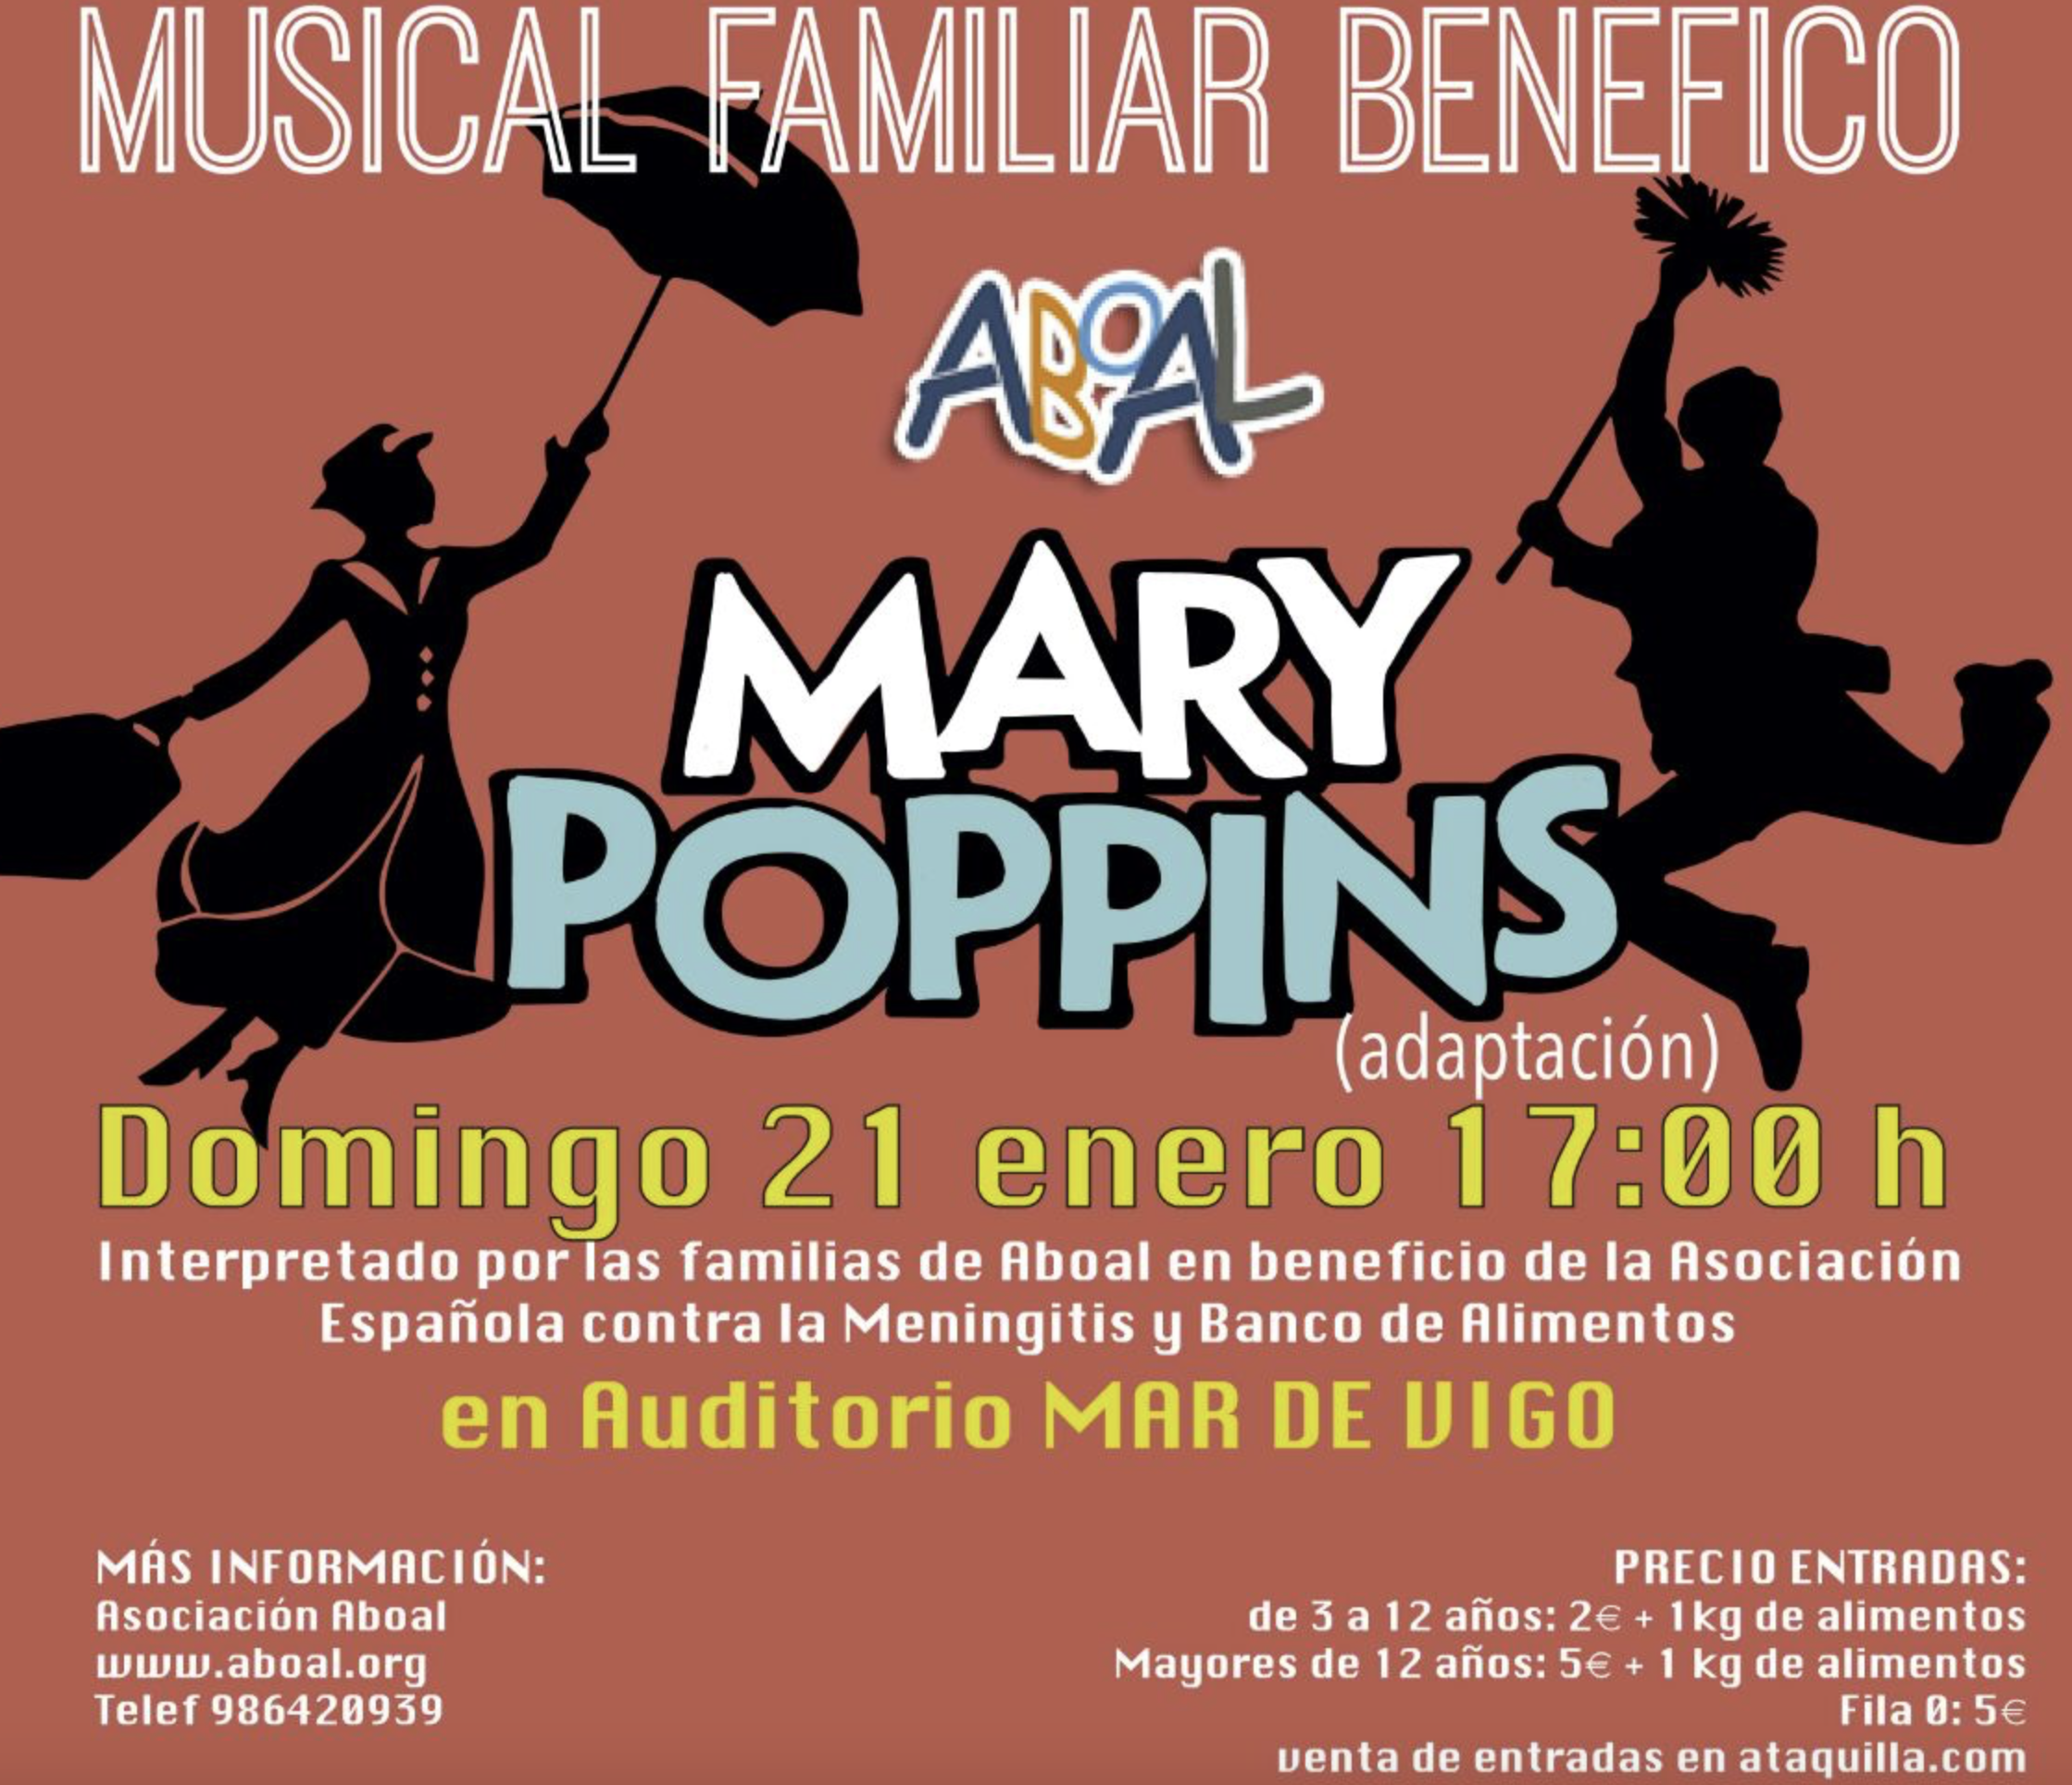 Musical Familiar Benéfico Mary Poppins – Auditorio Mar de Vigo – 21 de Enero